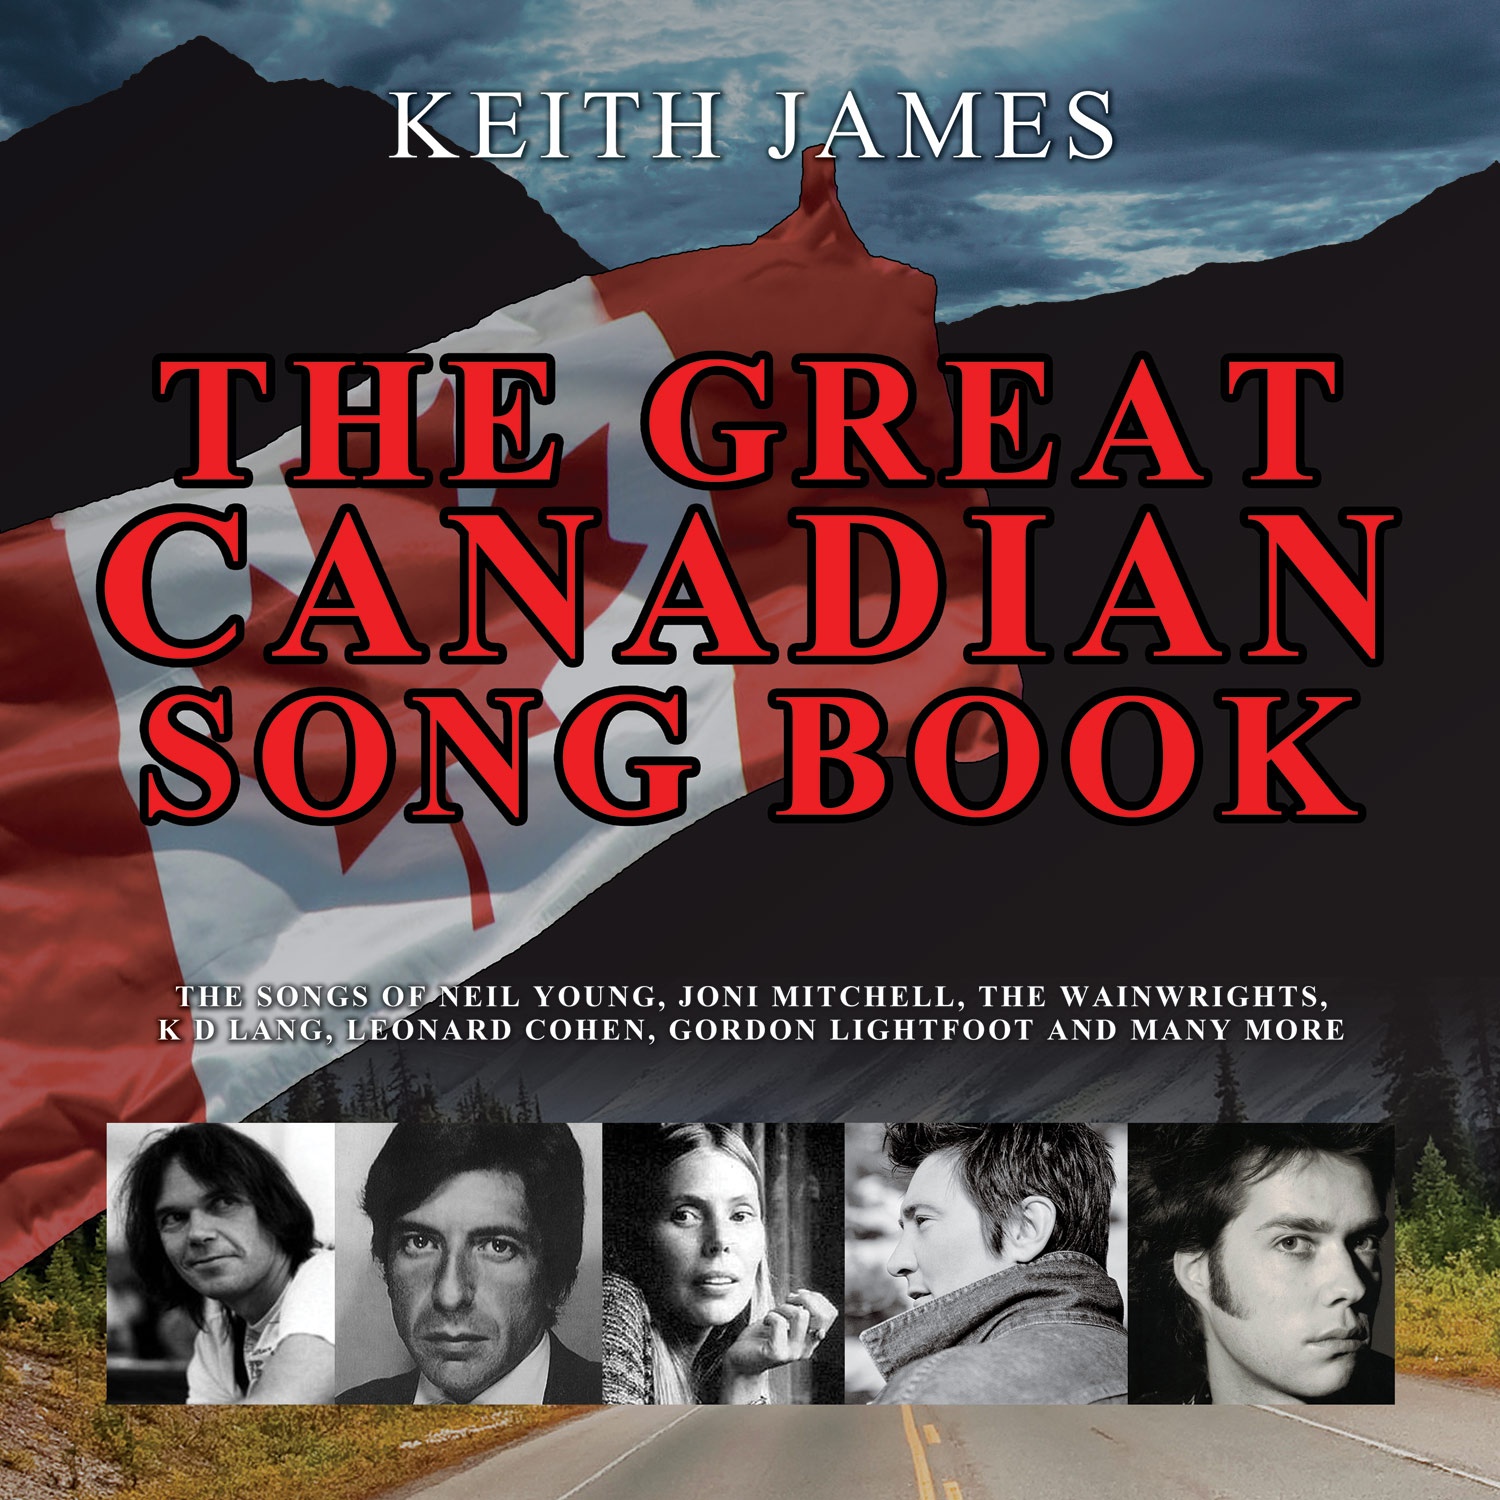 Keith James,  The Great Canadian Songbook